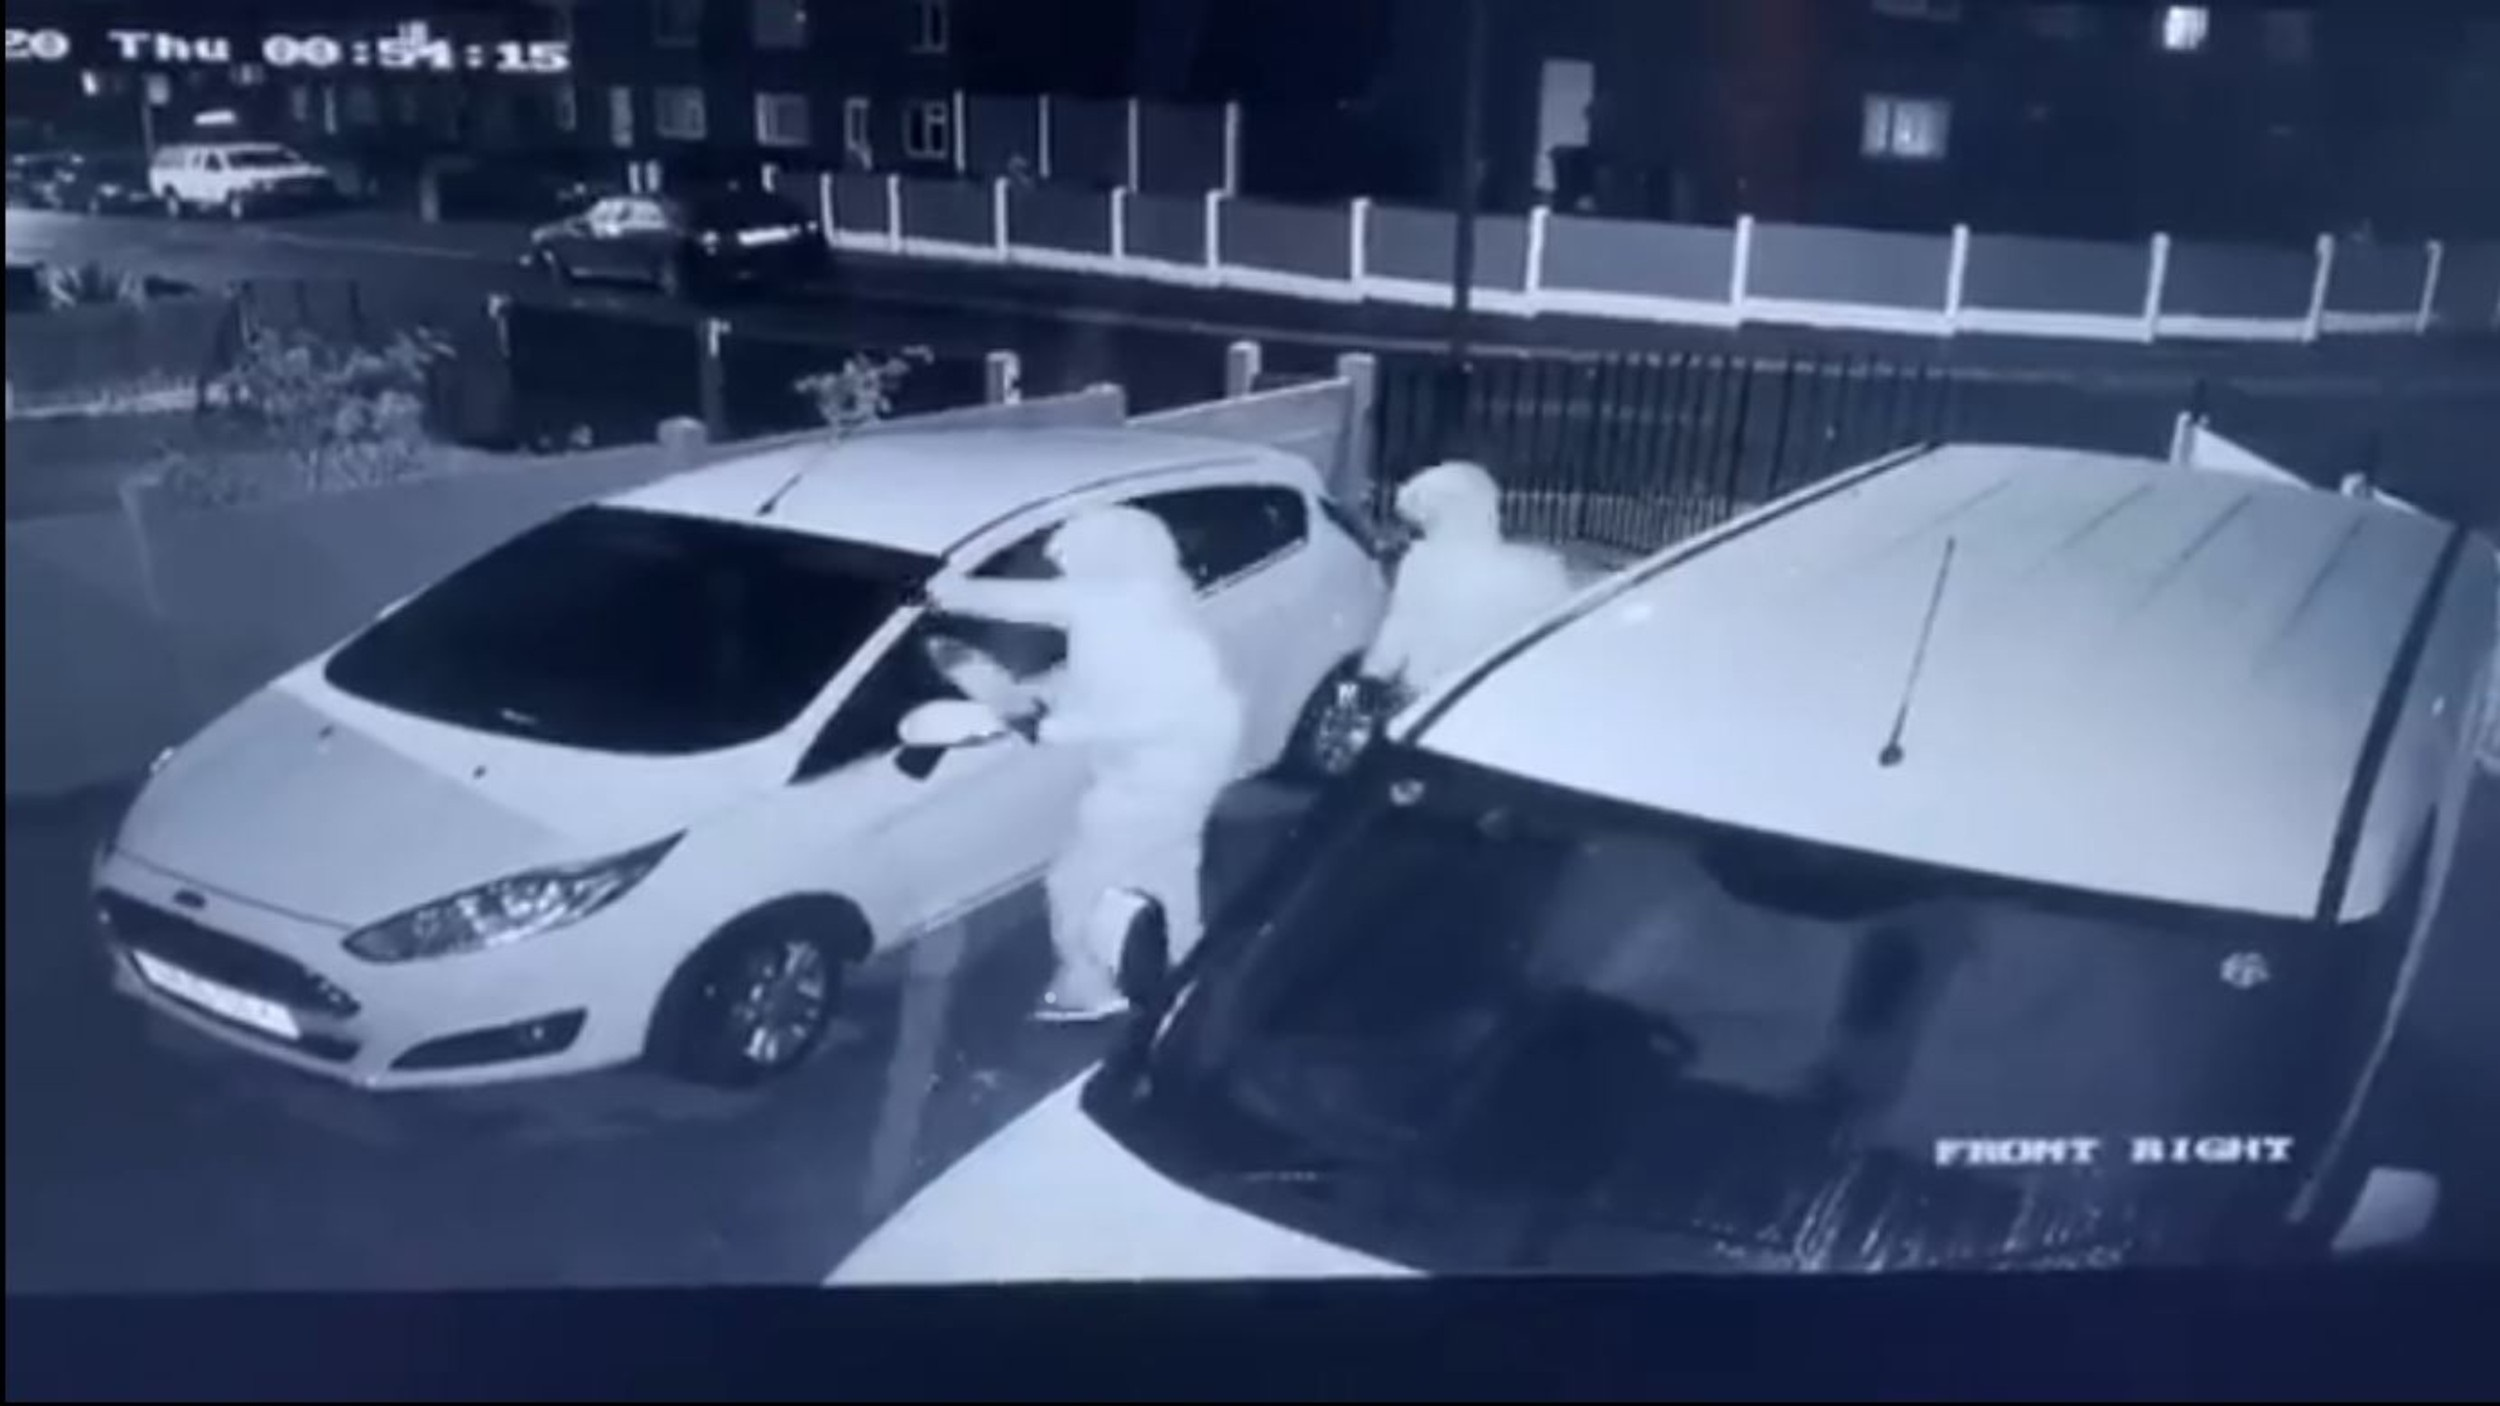 Yobs were captured on CCTV setting  a Ford on fire